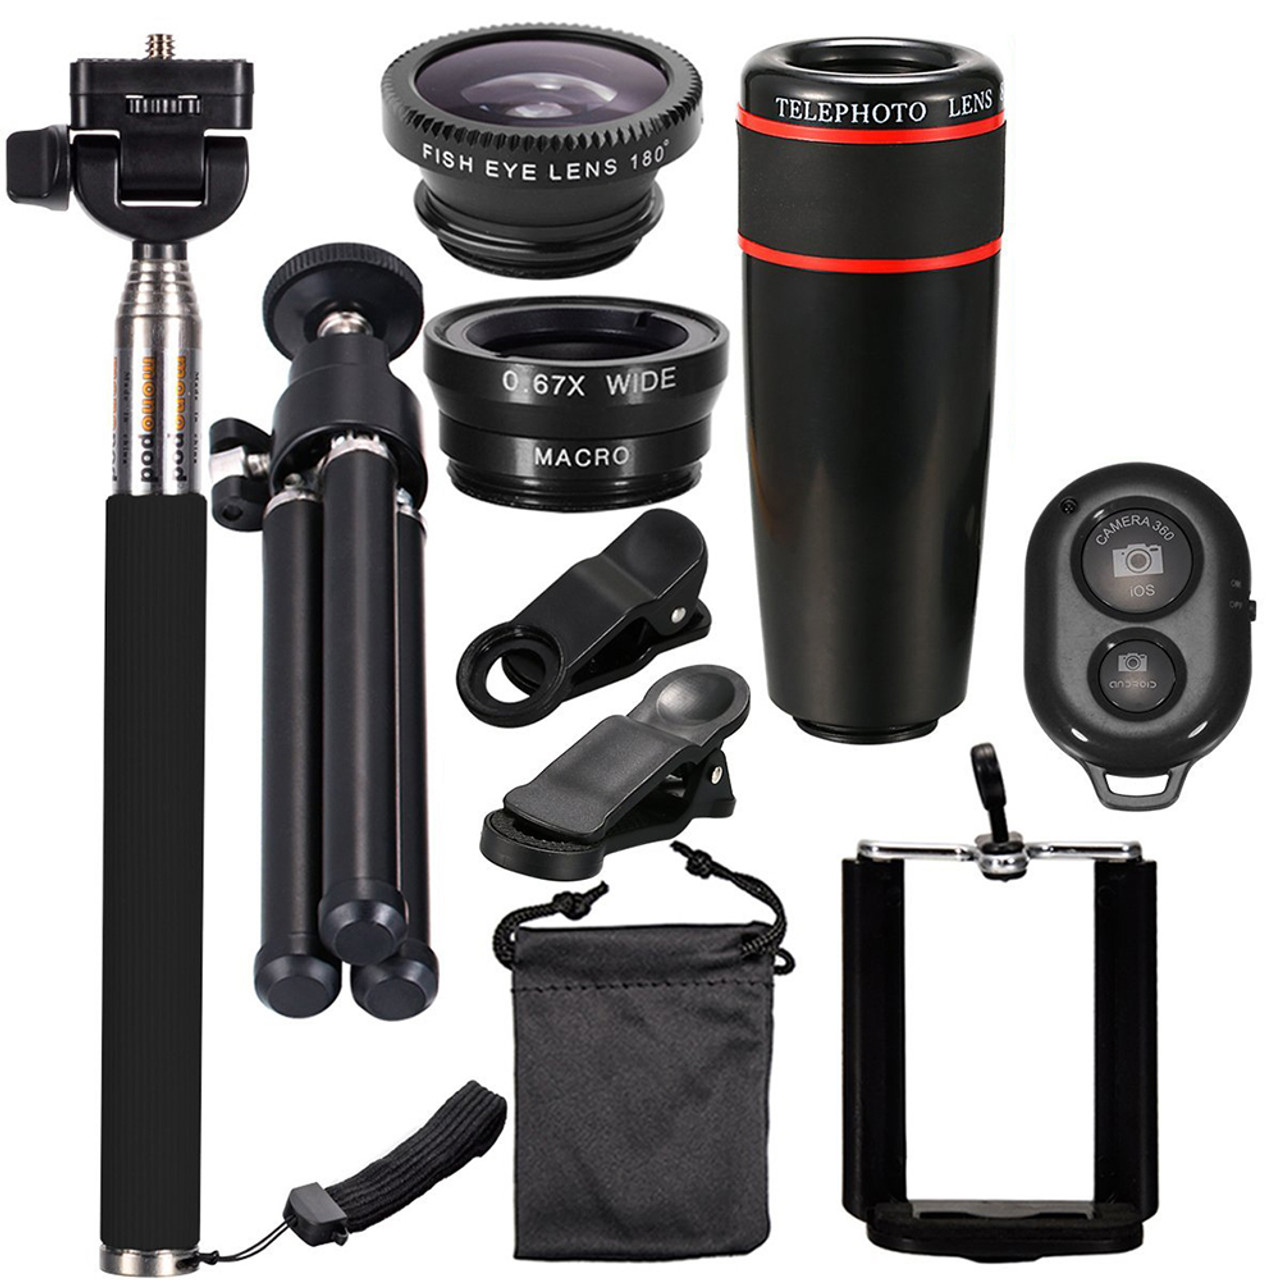 10-in-1 Smartphone Tripod and Lens Bundle $11.99 (94% OFF)